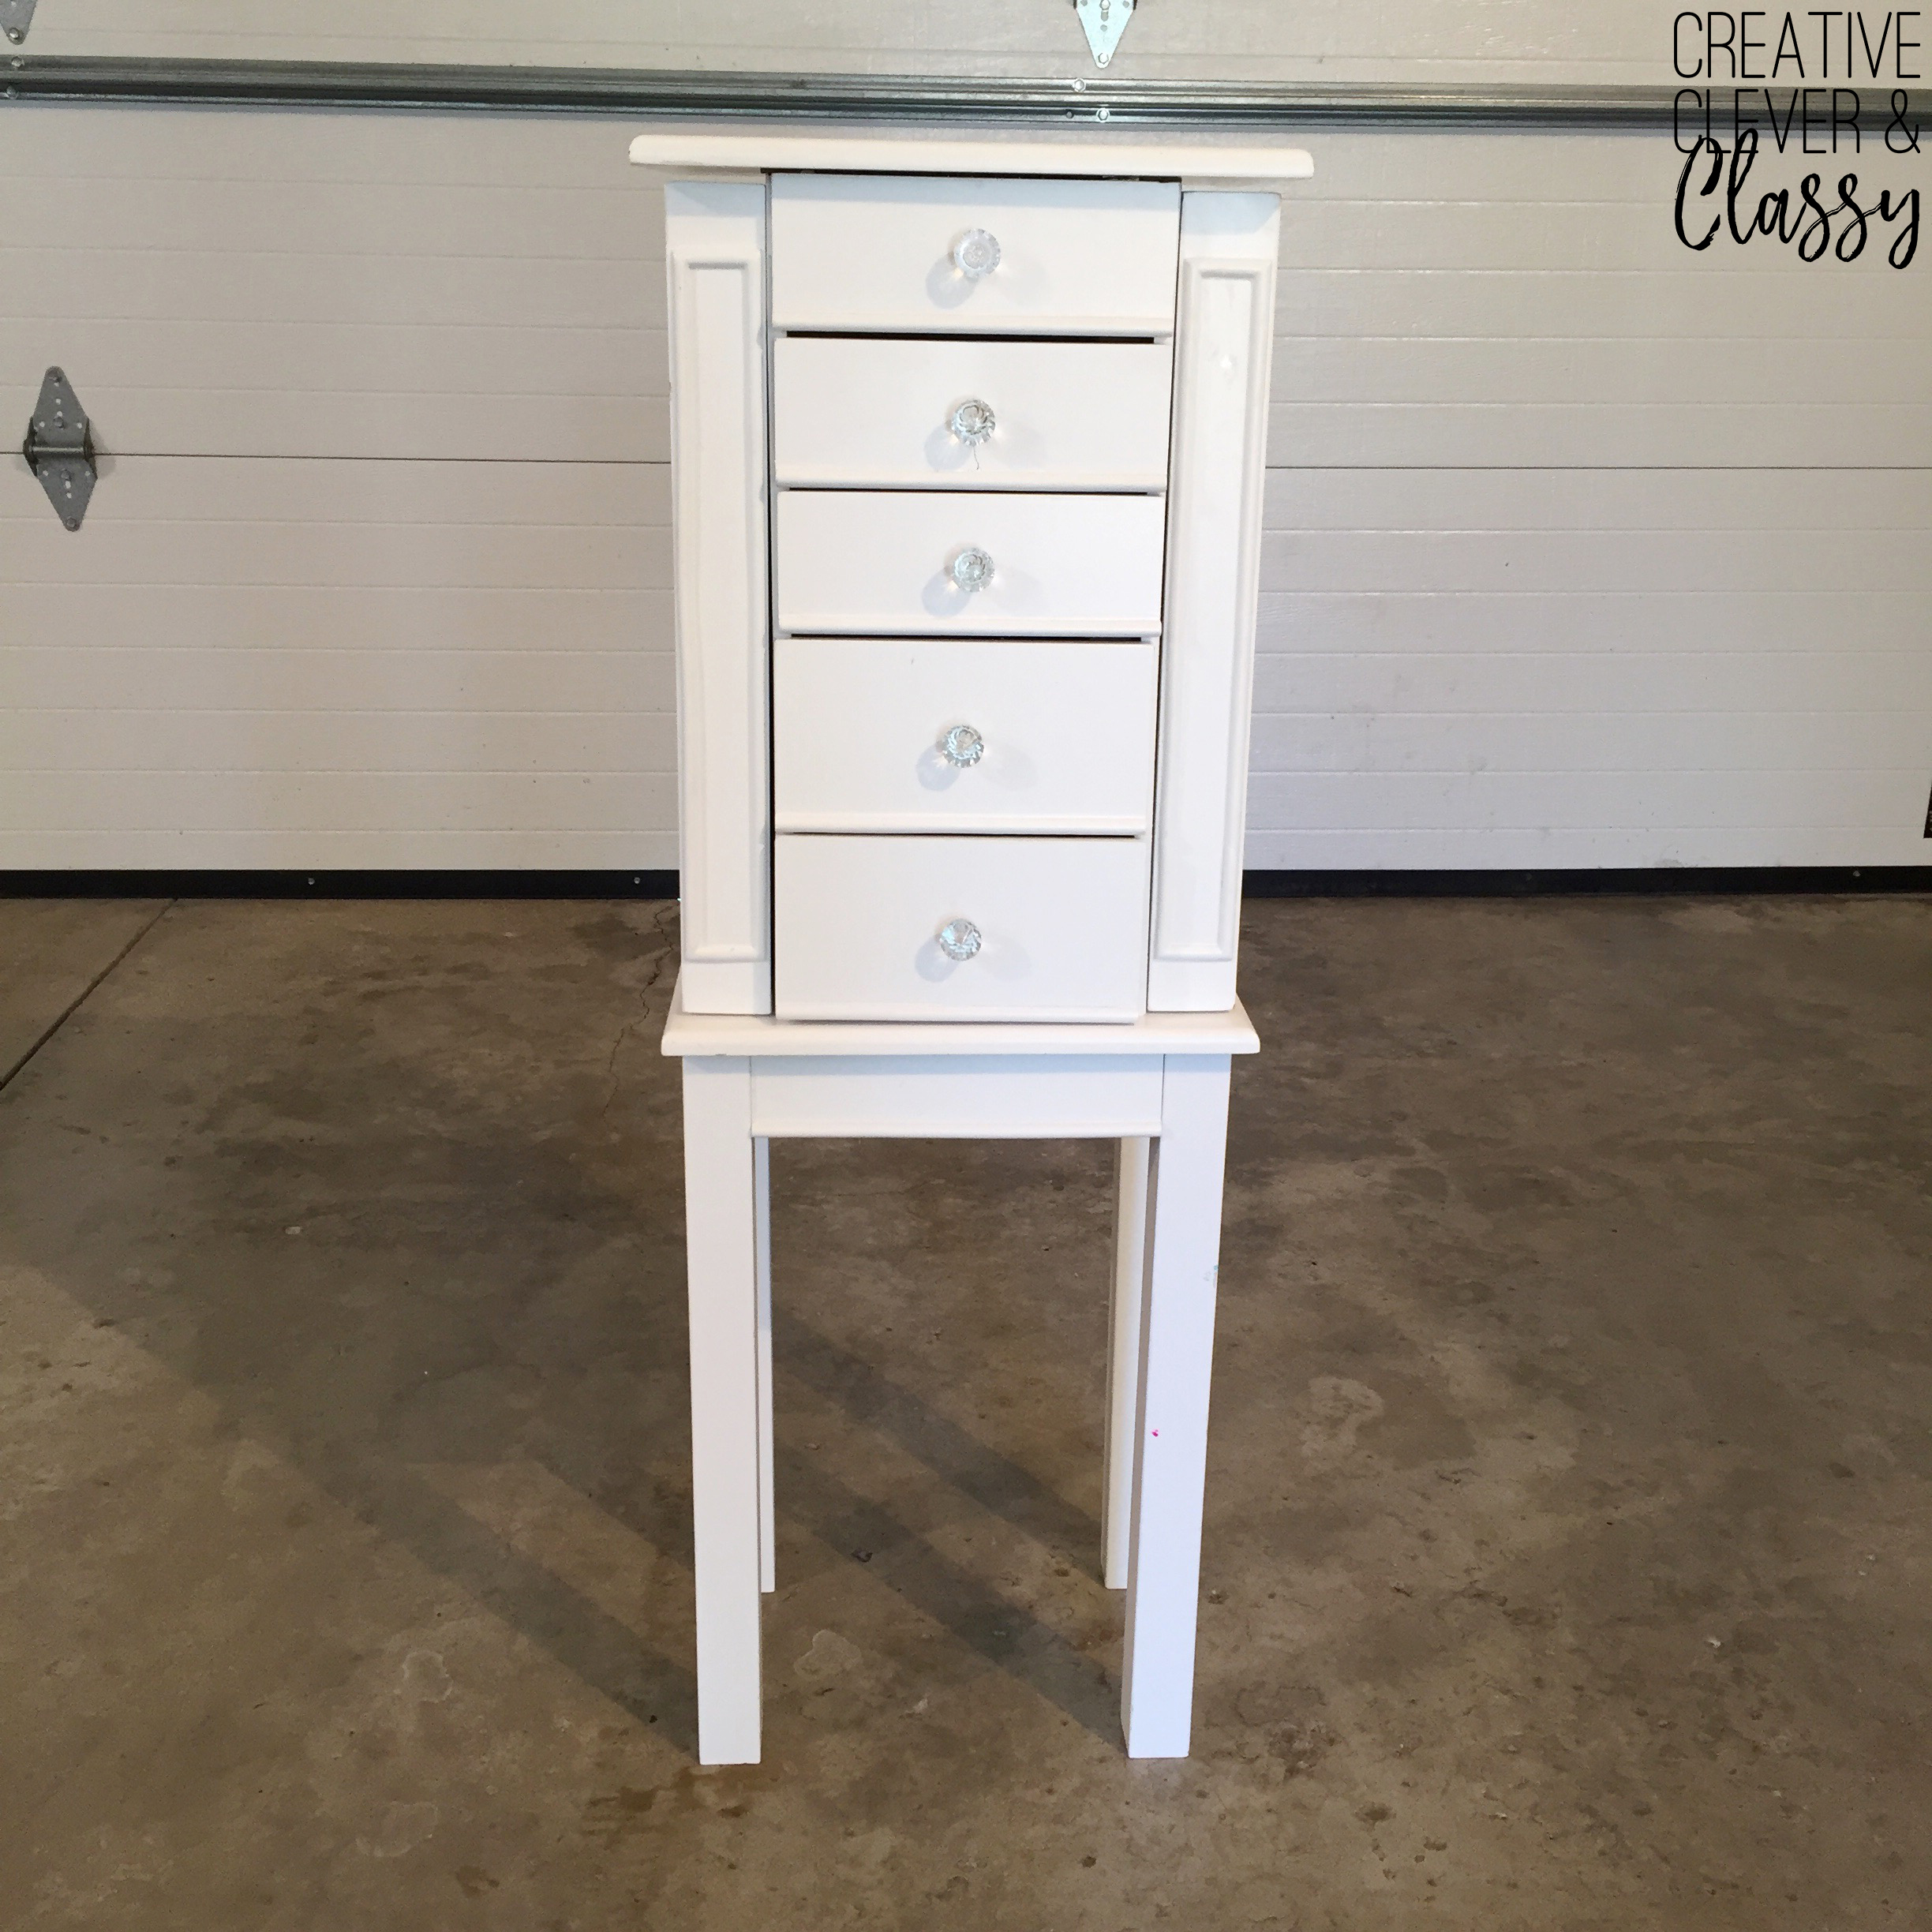 armoire but free used computer armoire image computer optional x x big and bulky but holds. Black Bedroom Furniture Sets. Home Design Ideas